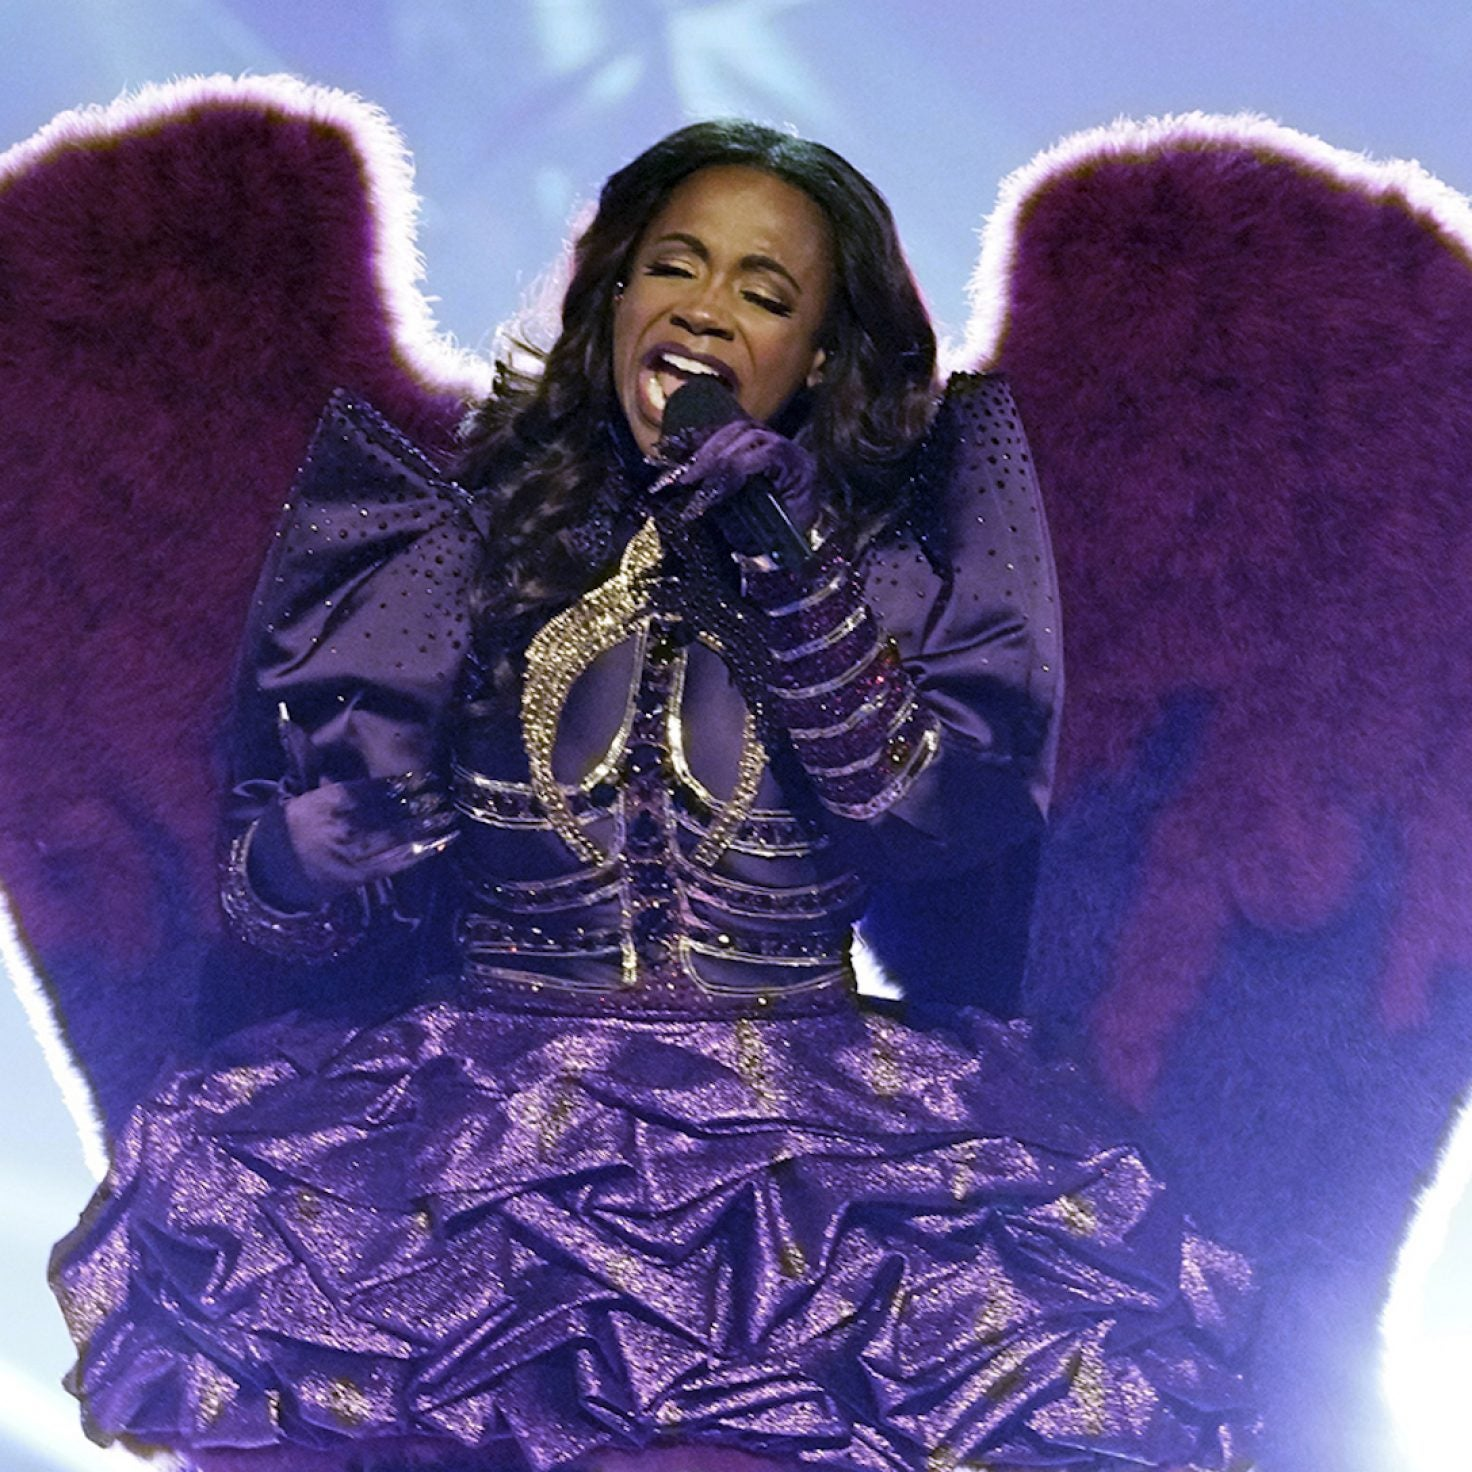 Kandi Burruss Becomes First Woman To Win 'The Masked Singer'